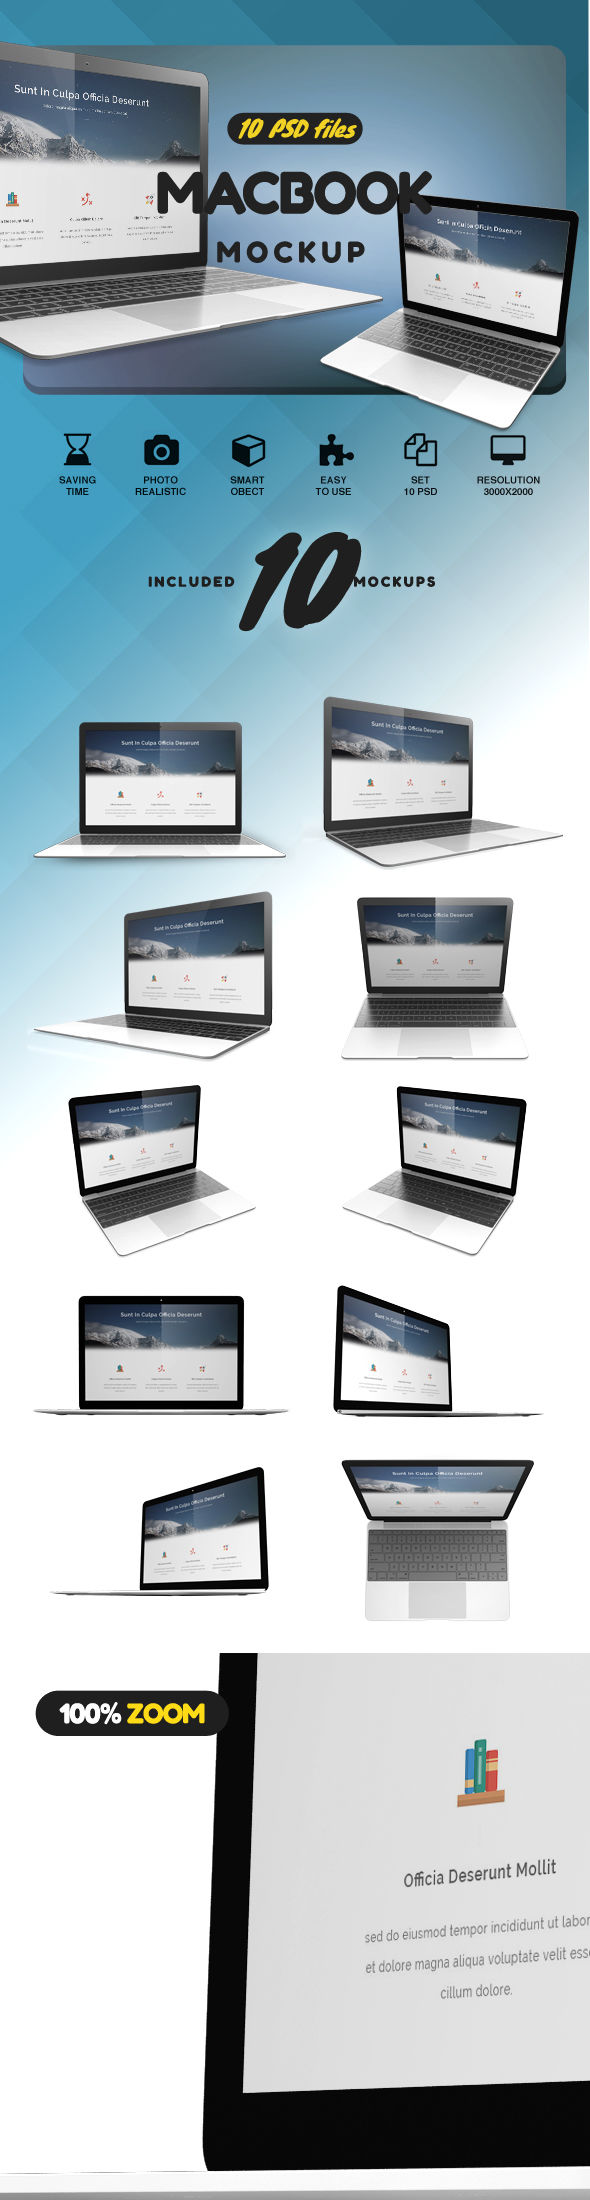 Download Mac Browser Mockup Psd Yellowimages